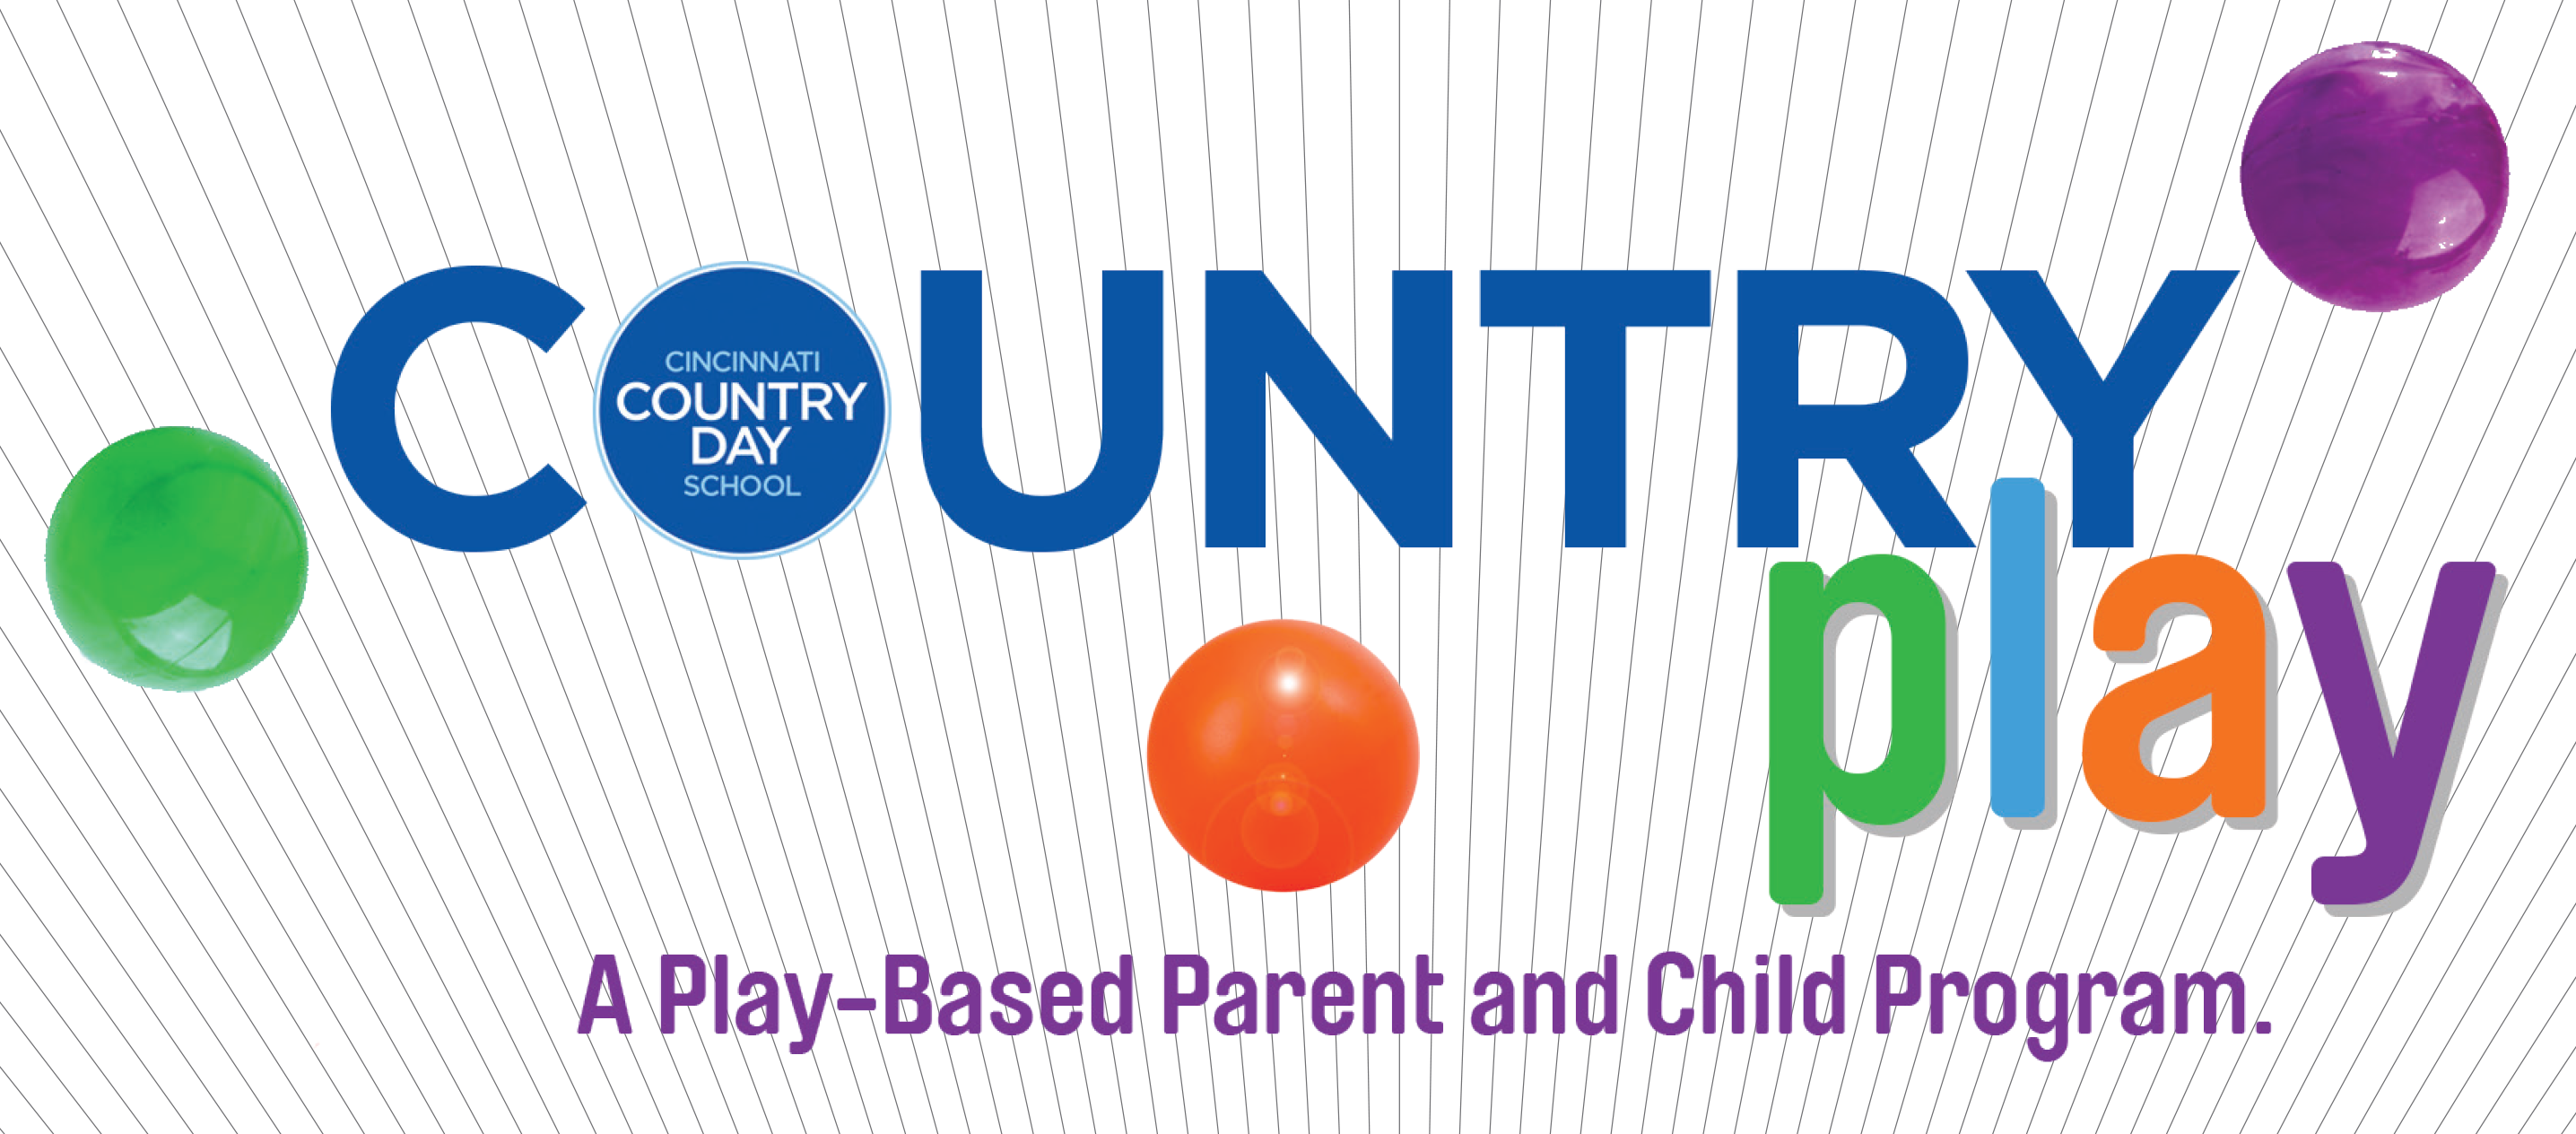 Country play program graphic